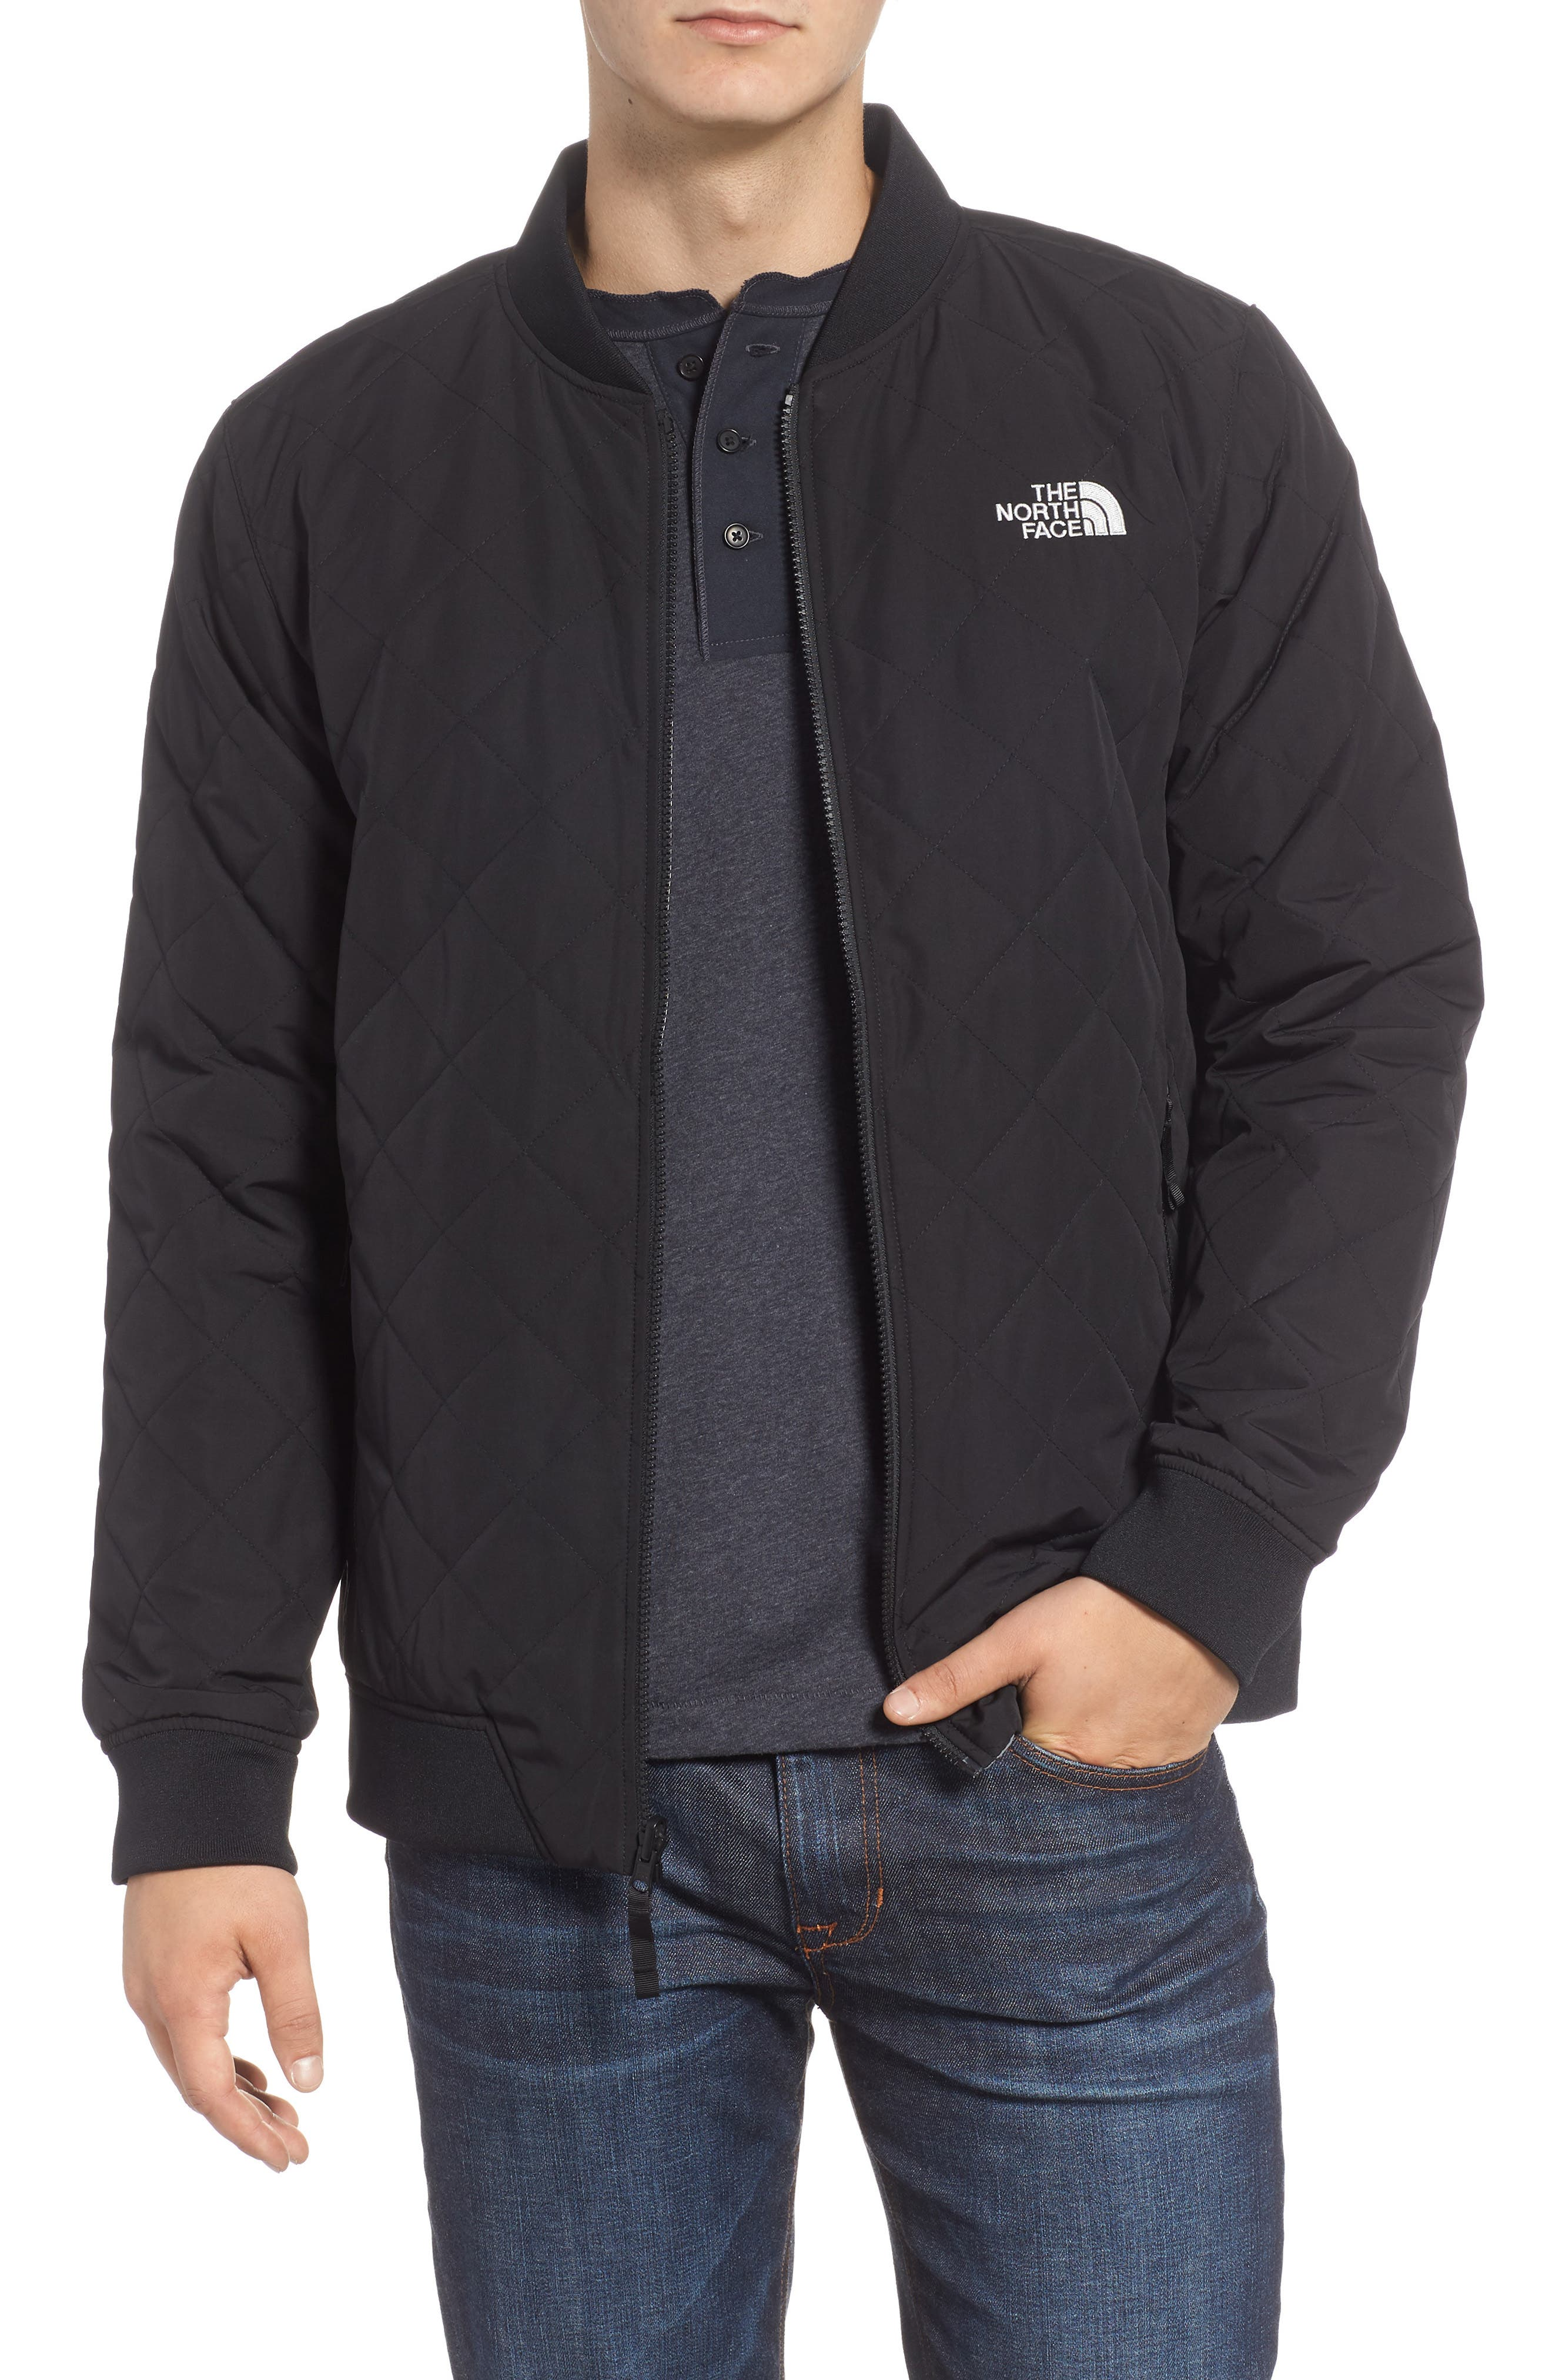 Jester Reversible Bomber Jacket,                             Main thumbnail 1, color,                             TNF BLACK